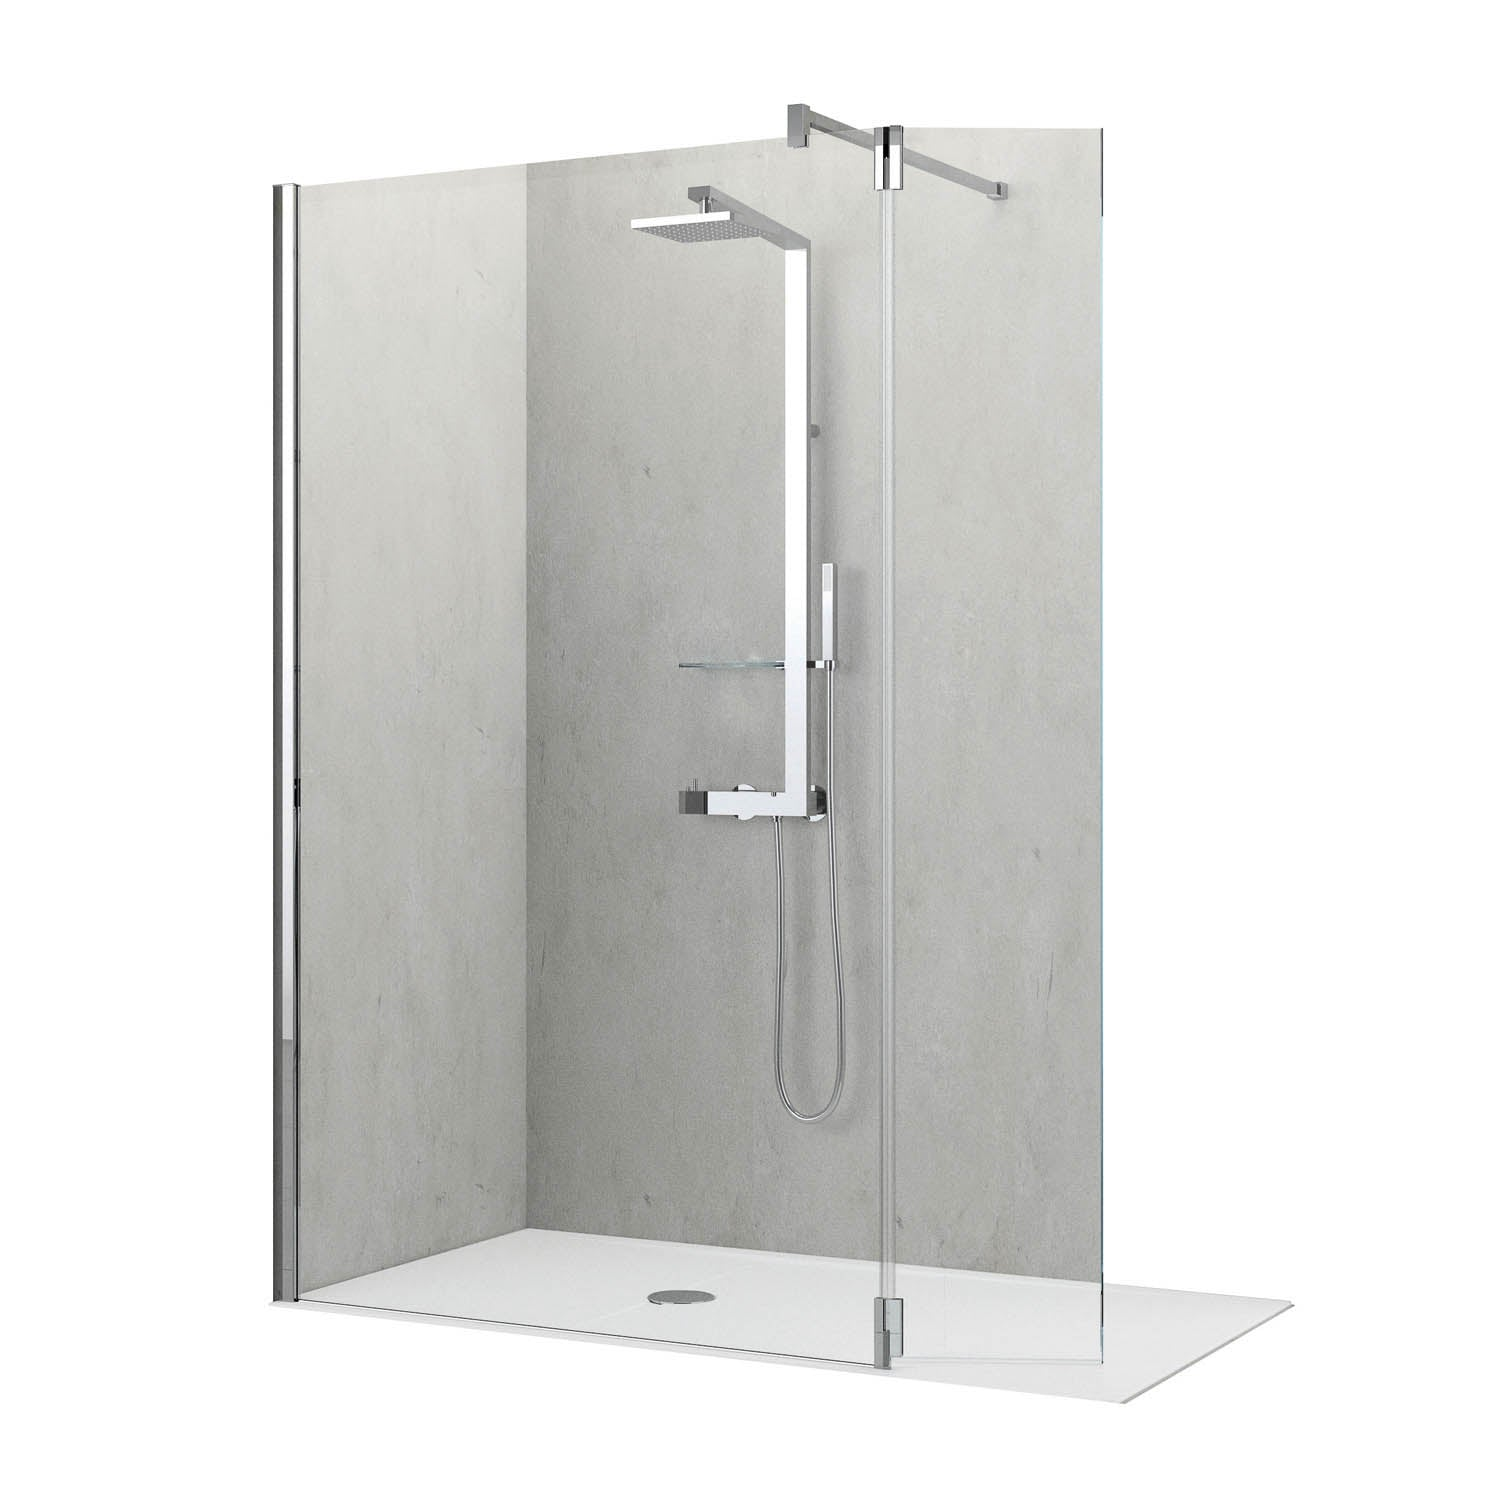 1170-1200mm Ergo Wet Room Screen Clear Glass with a chrome finish on a white background